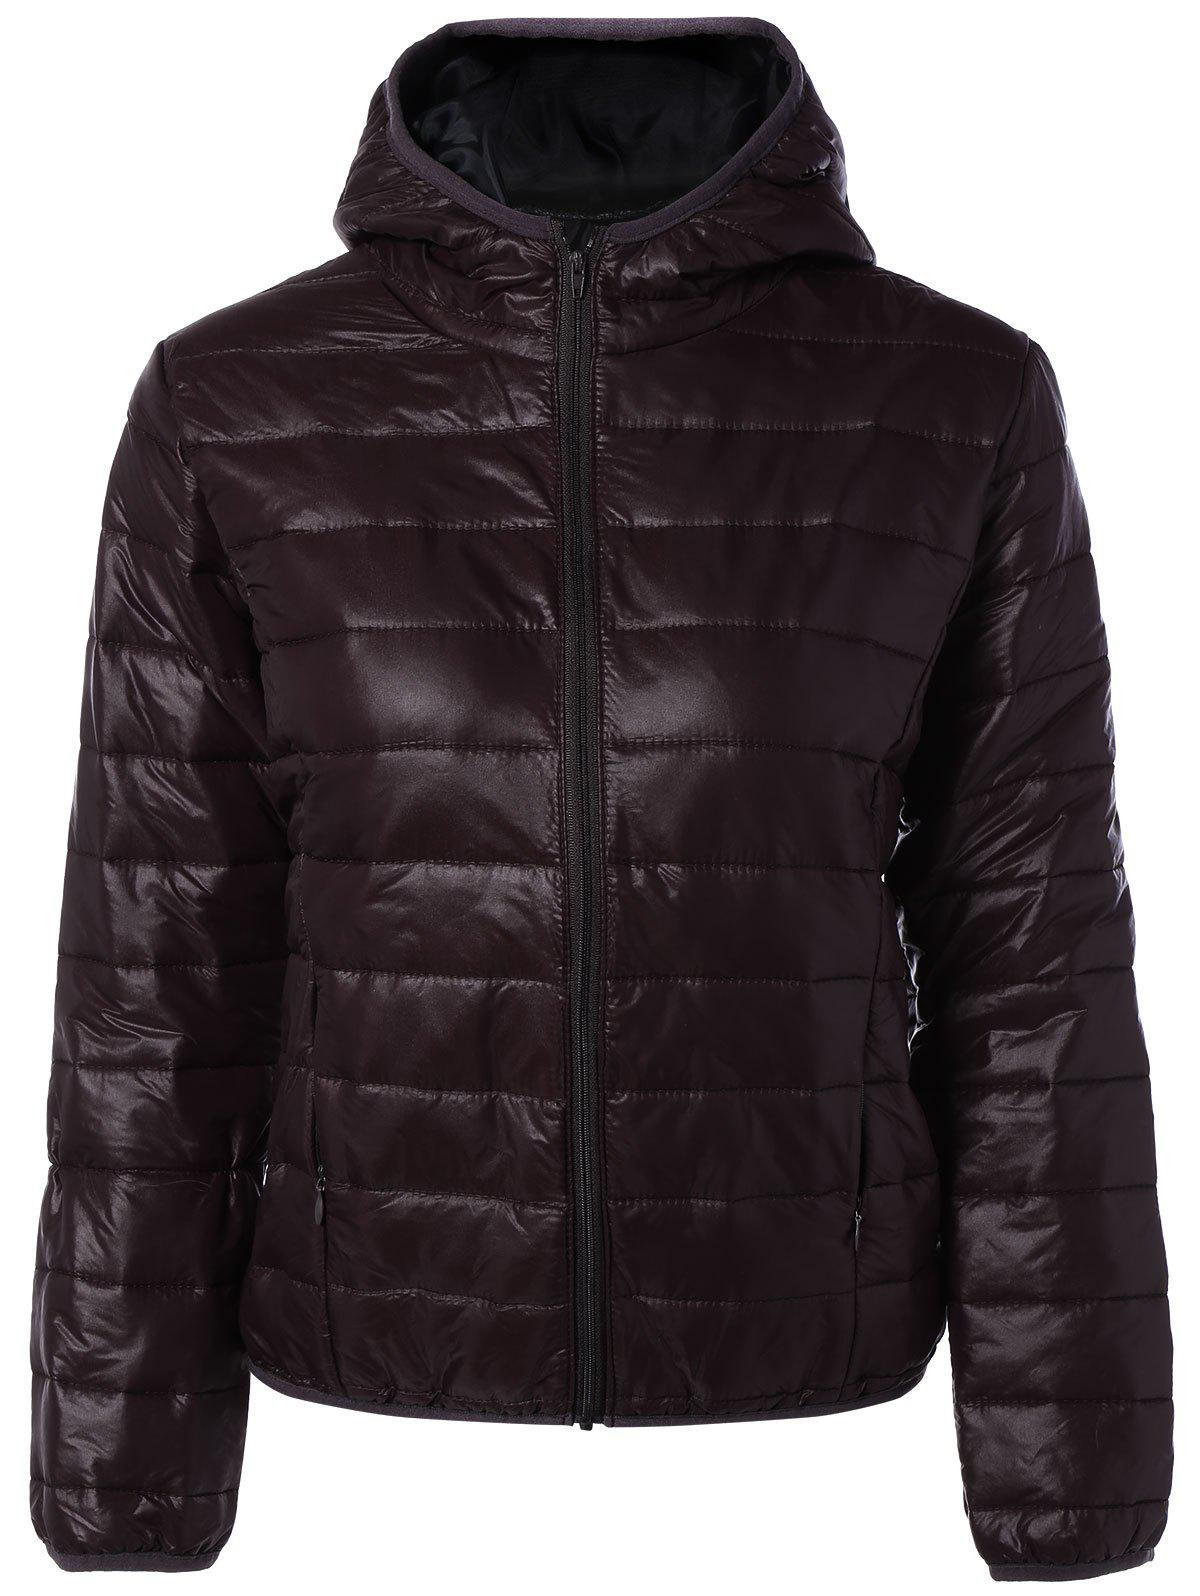 Online Topstitching Hooded Quilted Winter Jacket